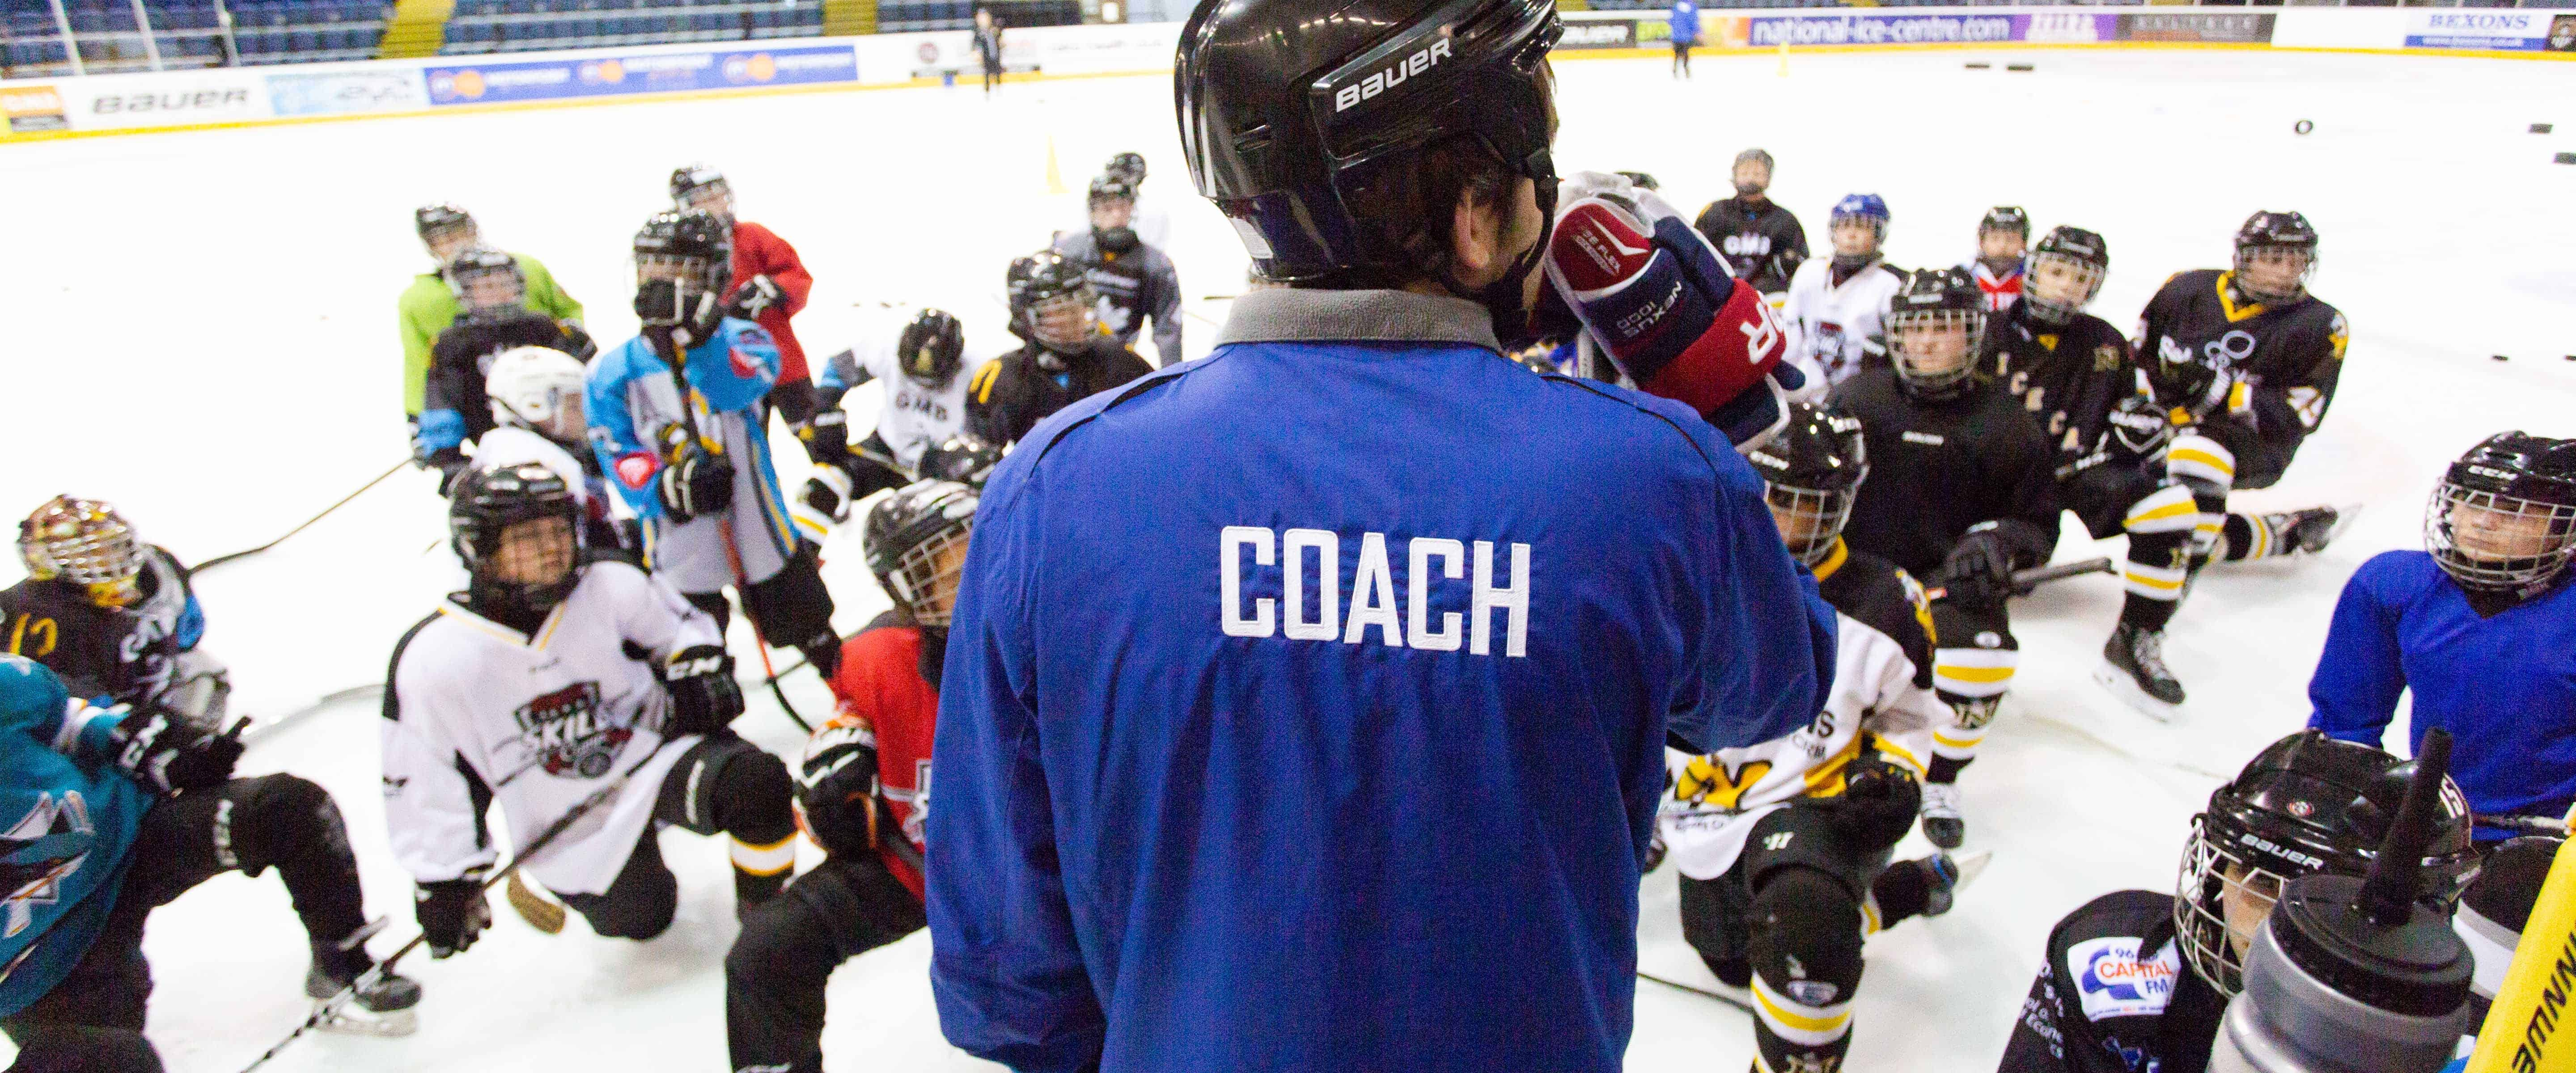 Junior Ice Hockey Clinic at the National Ice Centre